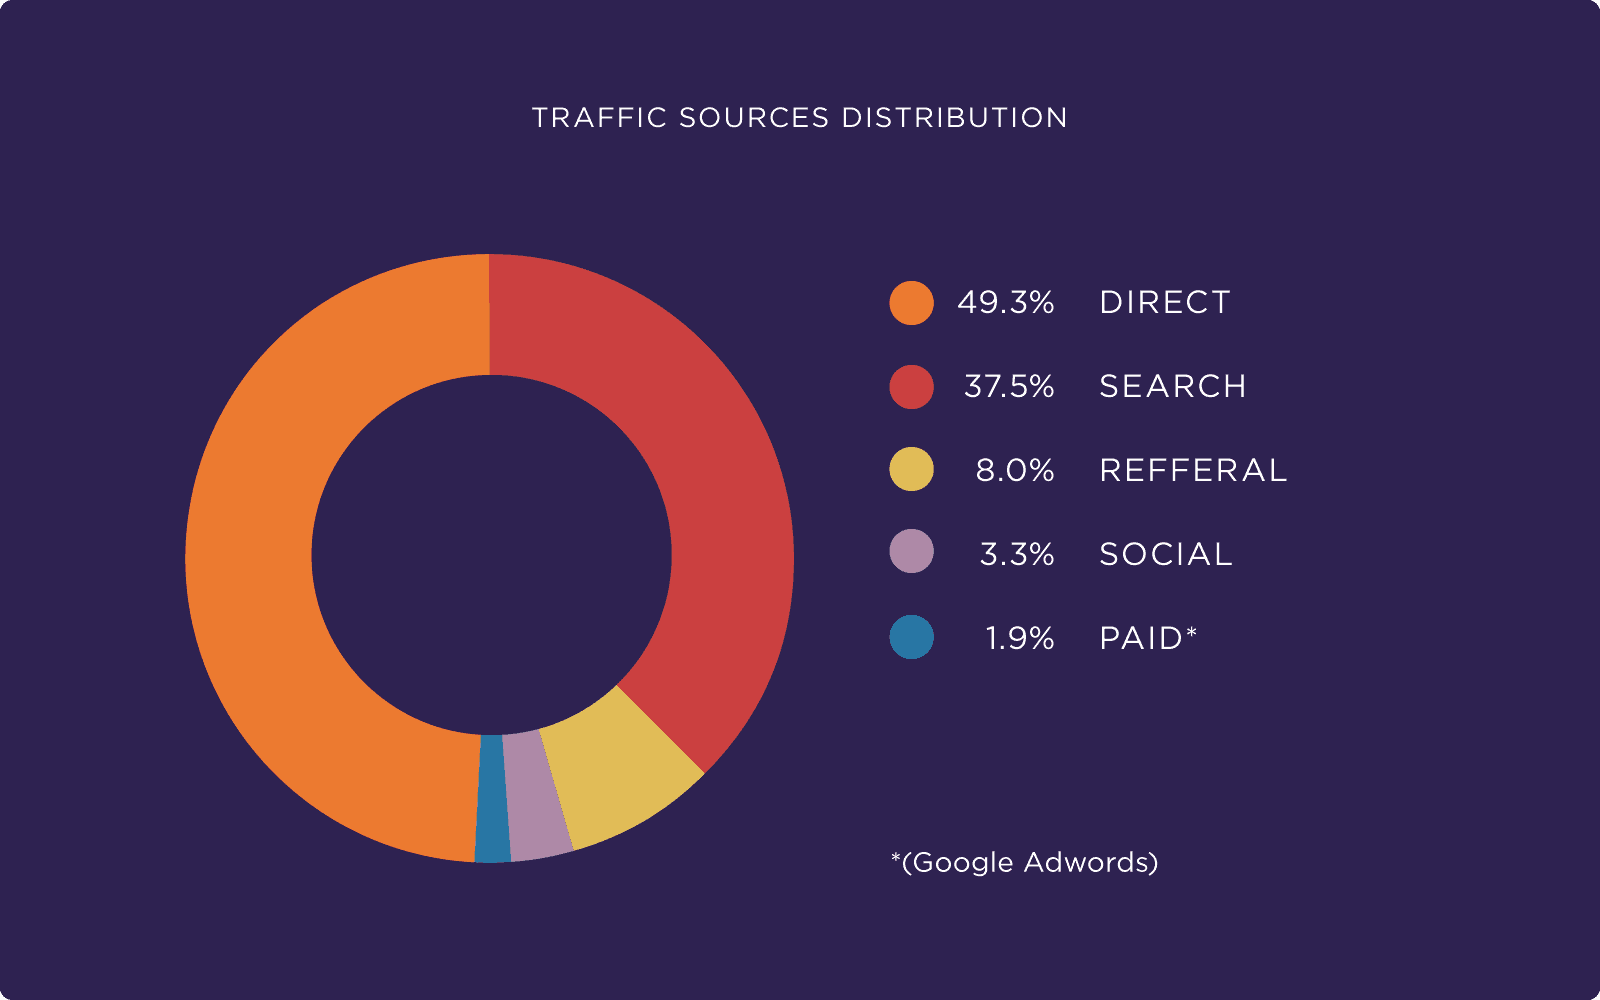 Traffic sources distribution